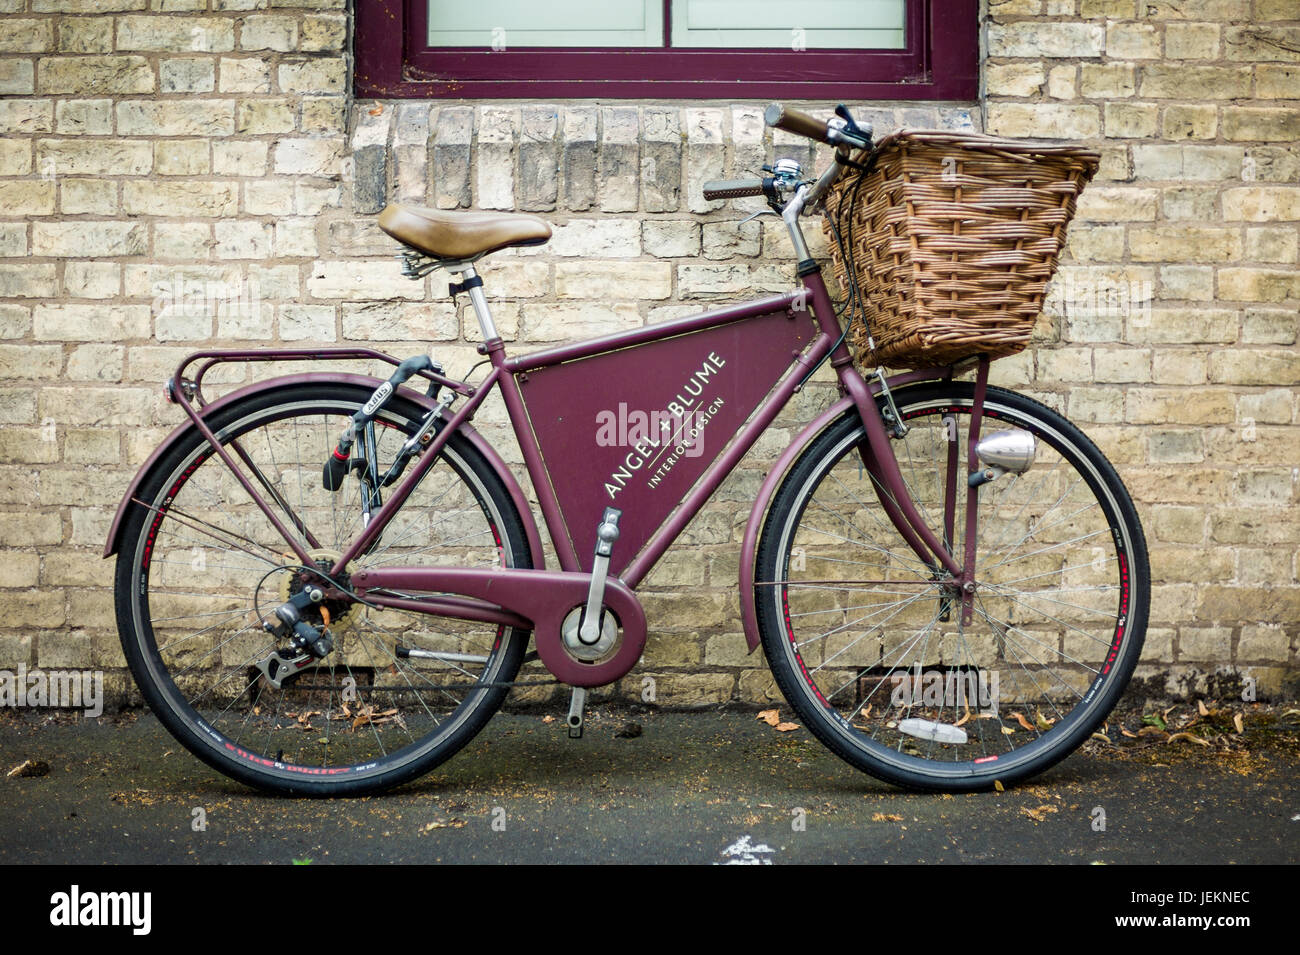 Bike Advertising in Cambridge - a classic style bike advertising the Angel and Blume Interior Design studio in Emmanuel - Stock Image